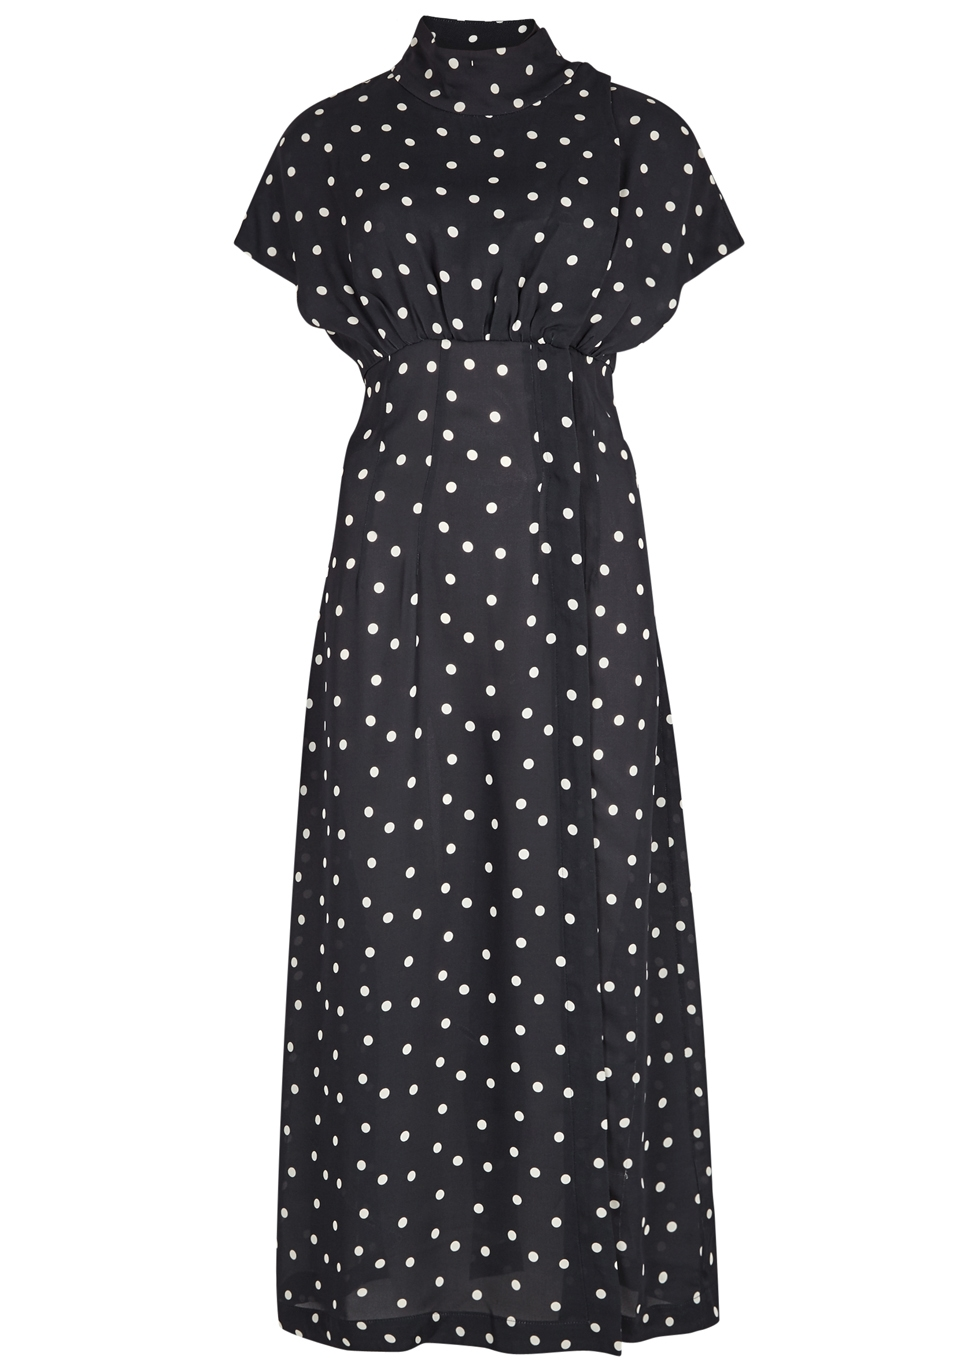 DOT POLKA-DOT MIDI DRESS